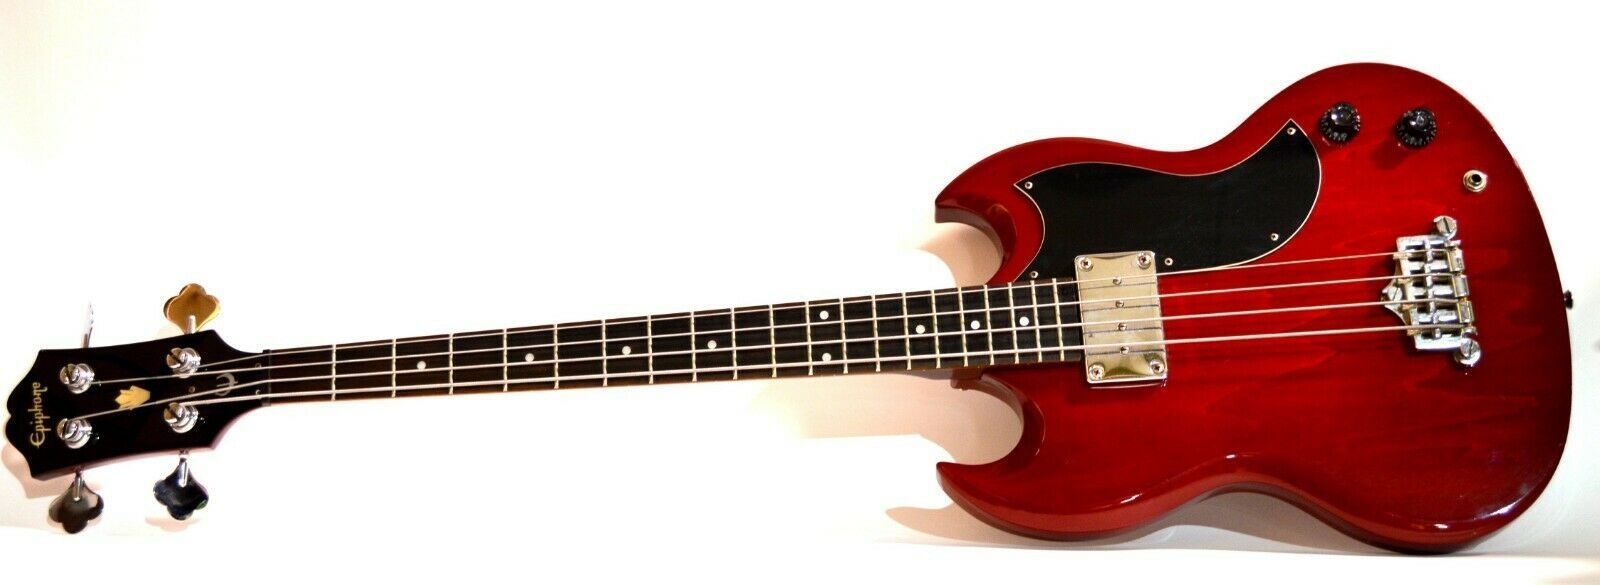 Epiphone Eb 0 Sg Style Electric Bass Guitar Cherry Price 169 99 Guitars For Sale Cheap Ac Acoustic Guitar For Sale Electric Guitar For Sale Guitar